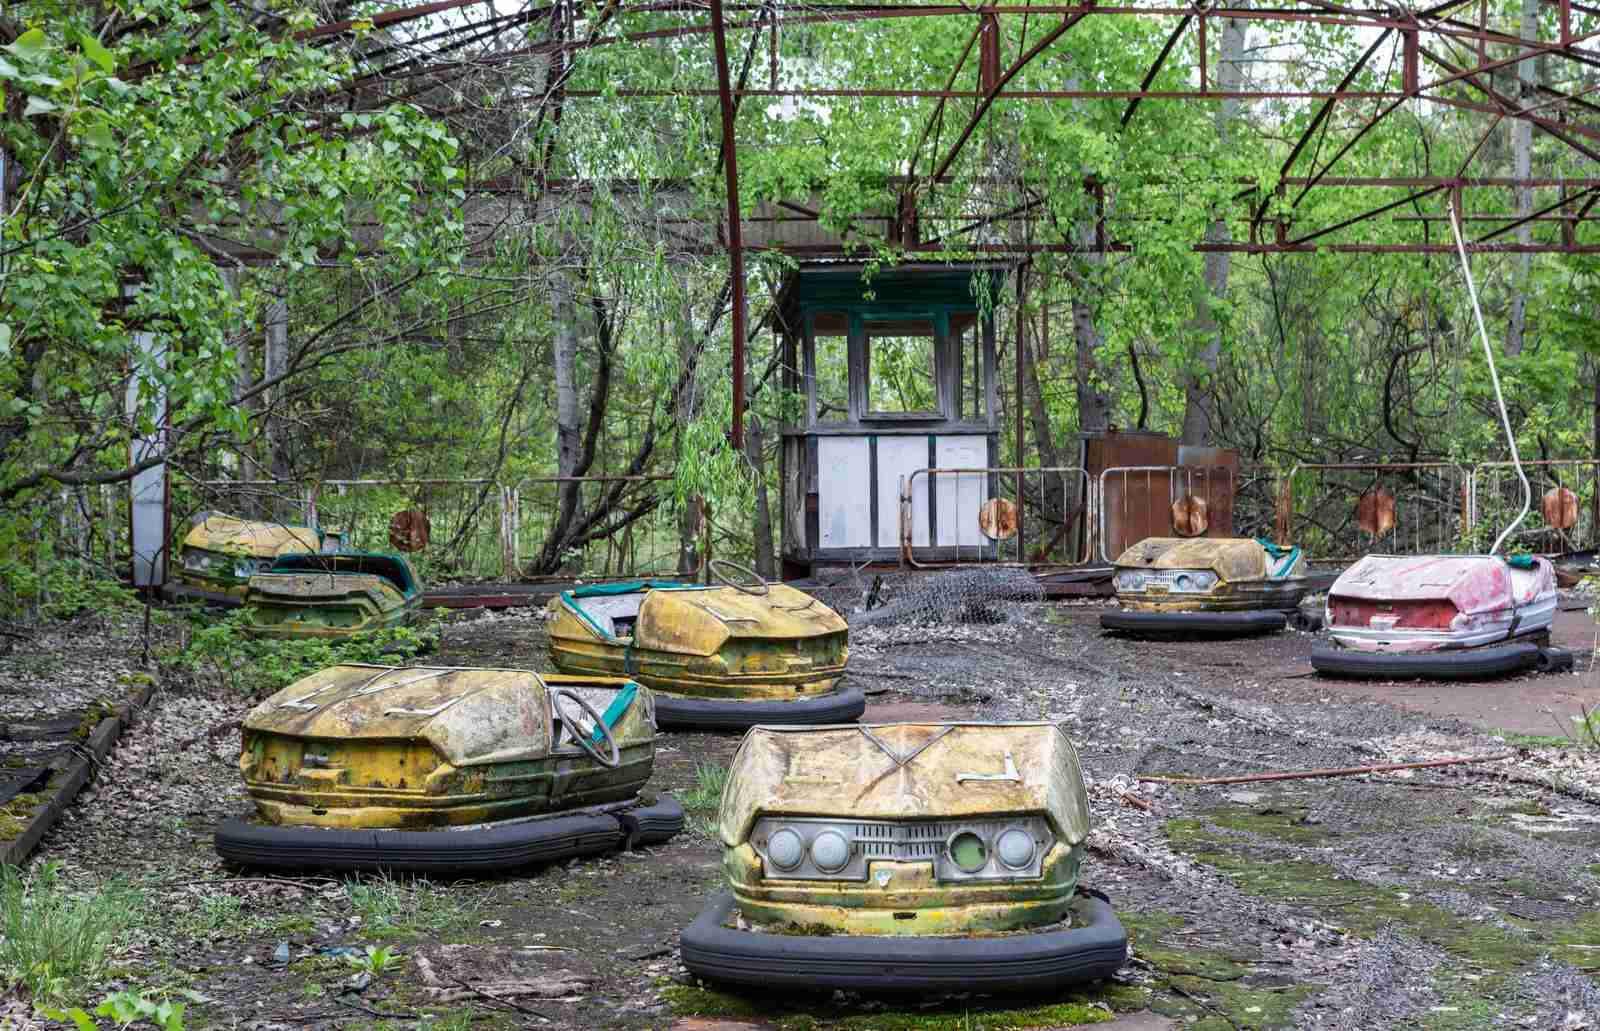 Chernobyl. (Photo by Francisco Goncalves/Getty Images)